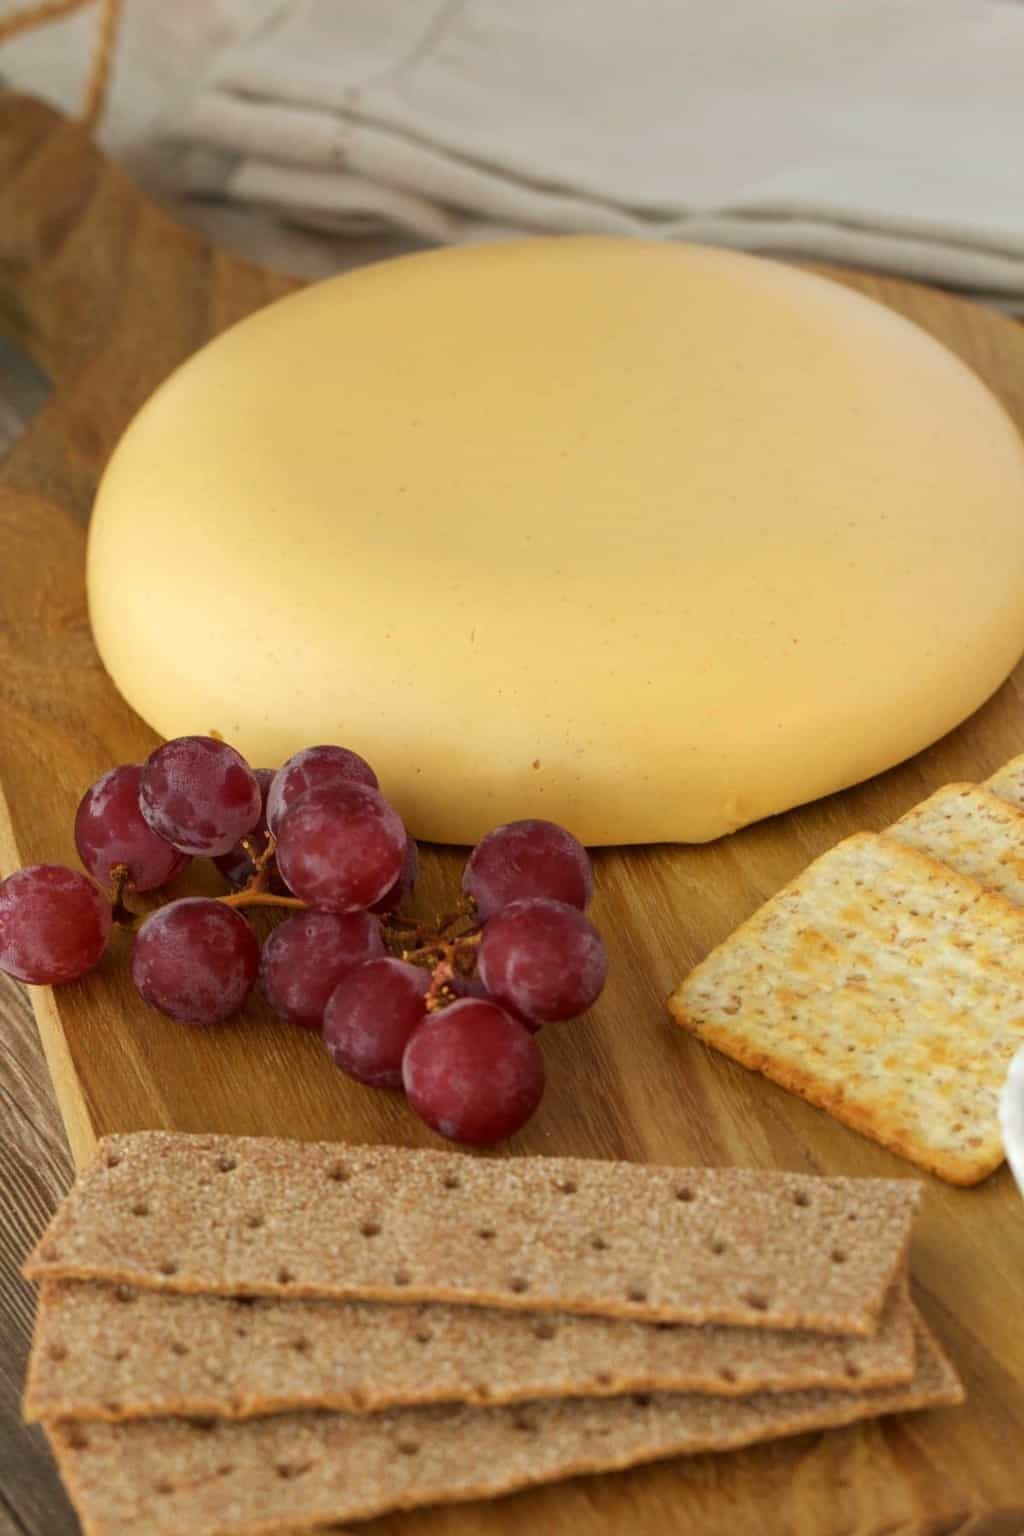 Vegan Cashew Cheese That Is Sliceable And Perfect For A Vegan Cheese Board Full Flavored Authentic Look Vegan Cashew Cheese Vegan Cheese Boards Cashew Cheese